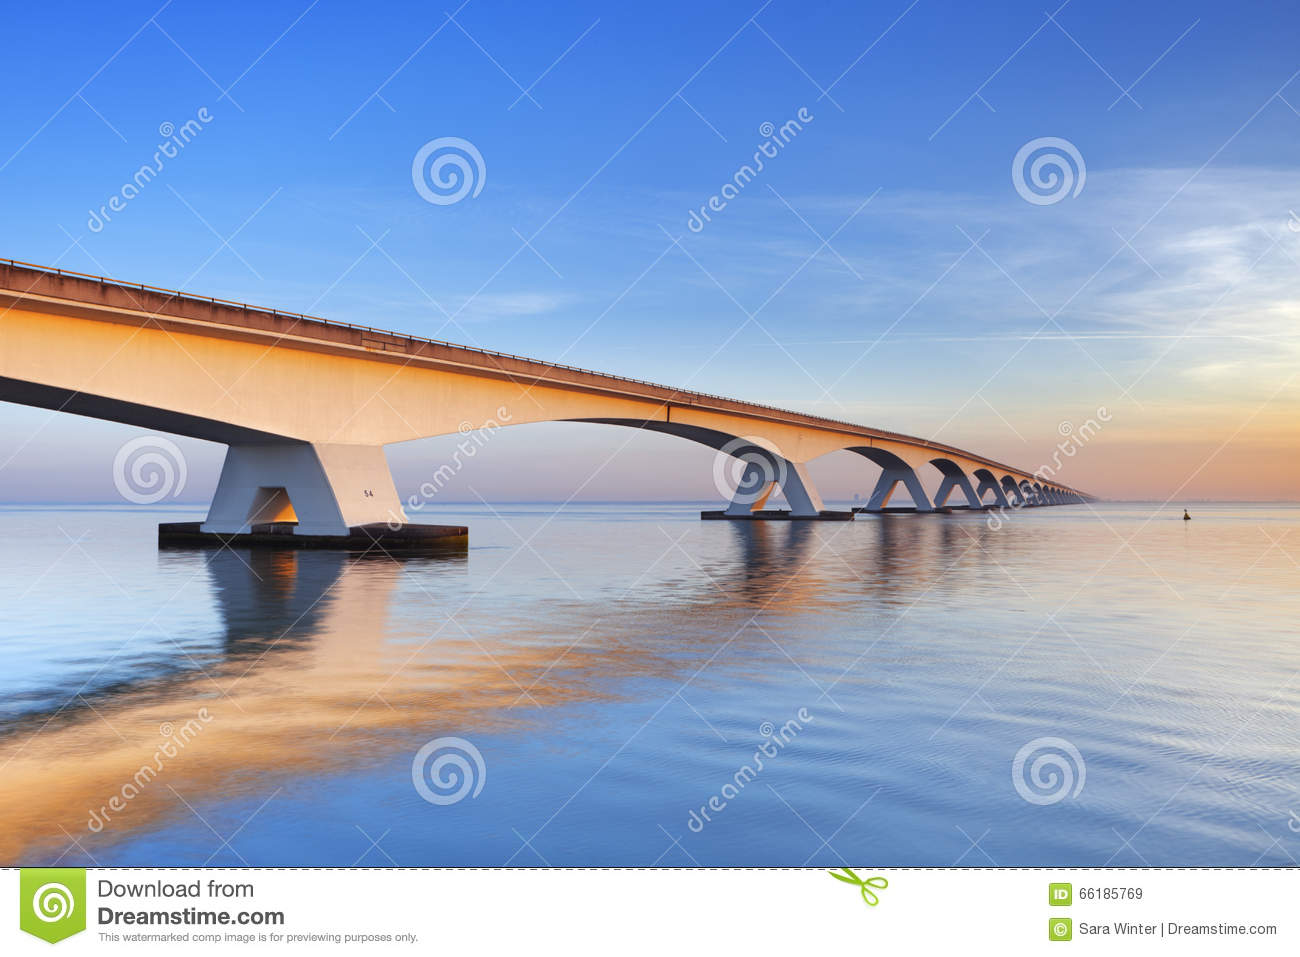 The Zeeland Bridge in Zeeland, The Netherlands at sunrise